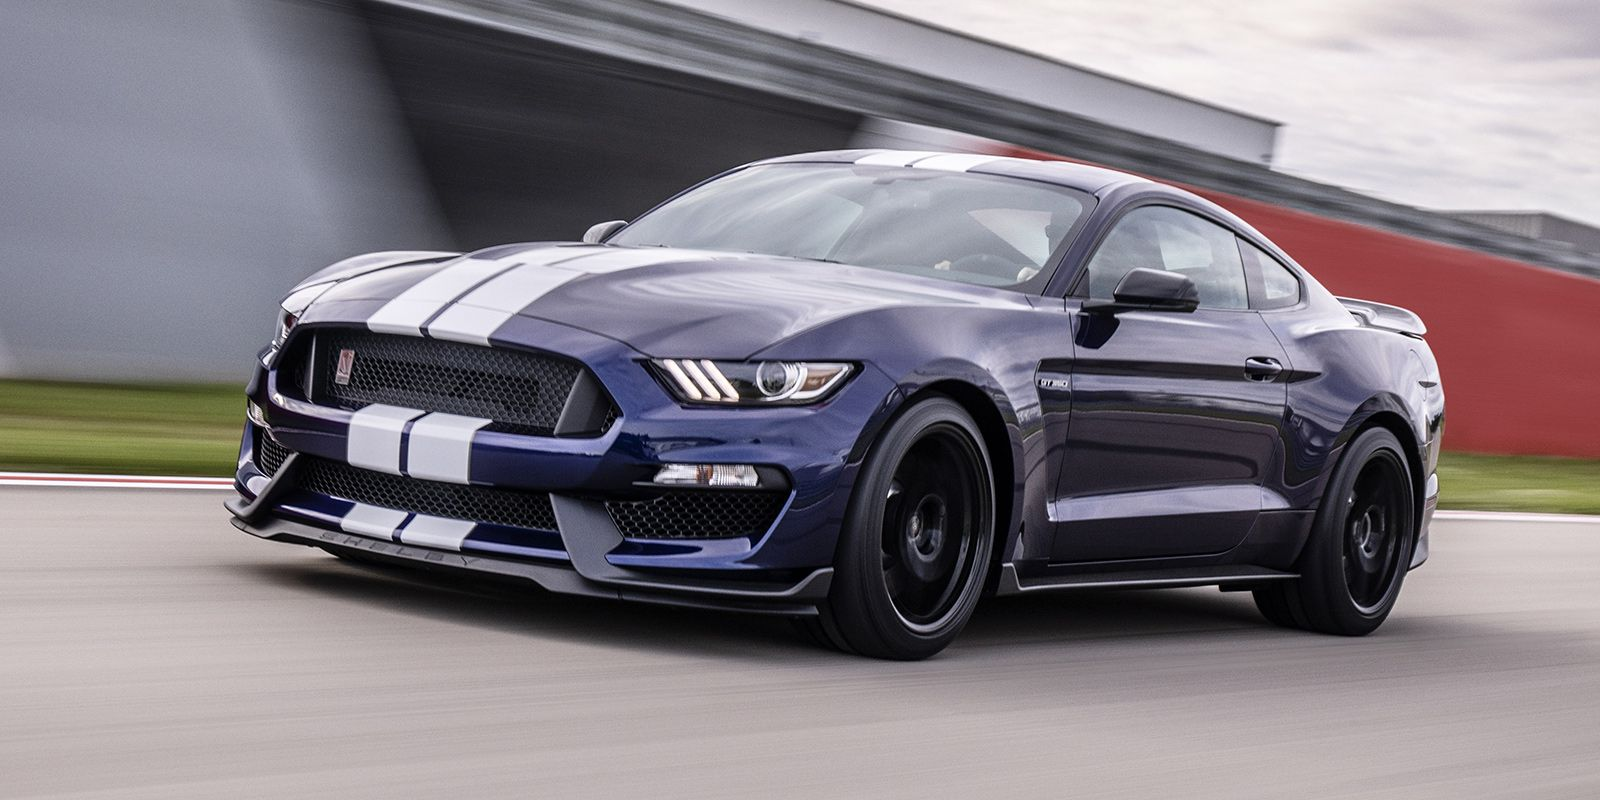 2021 Ford Mustang Shelby Gt 350 Redesign